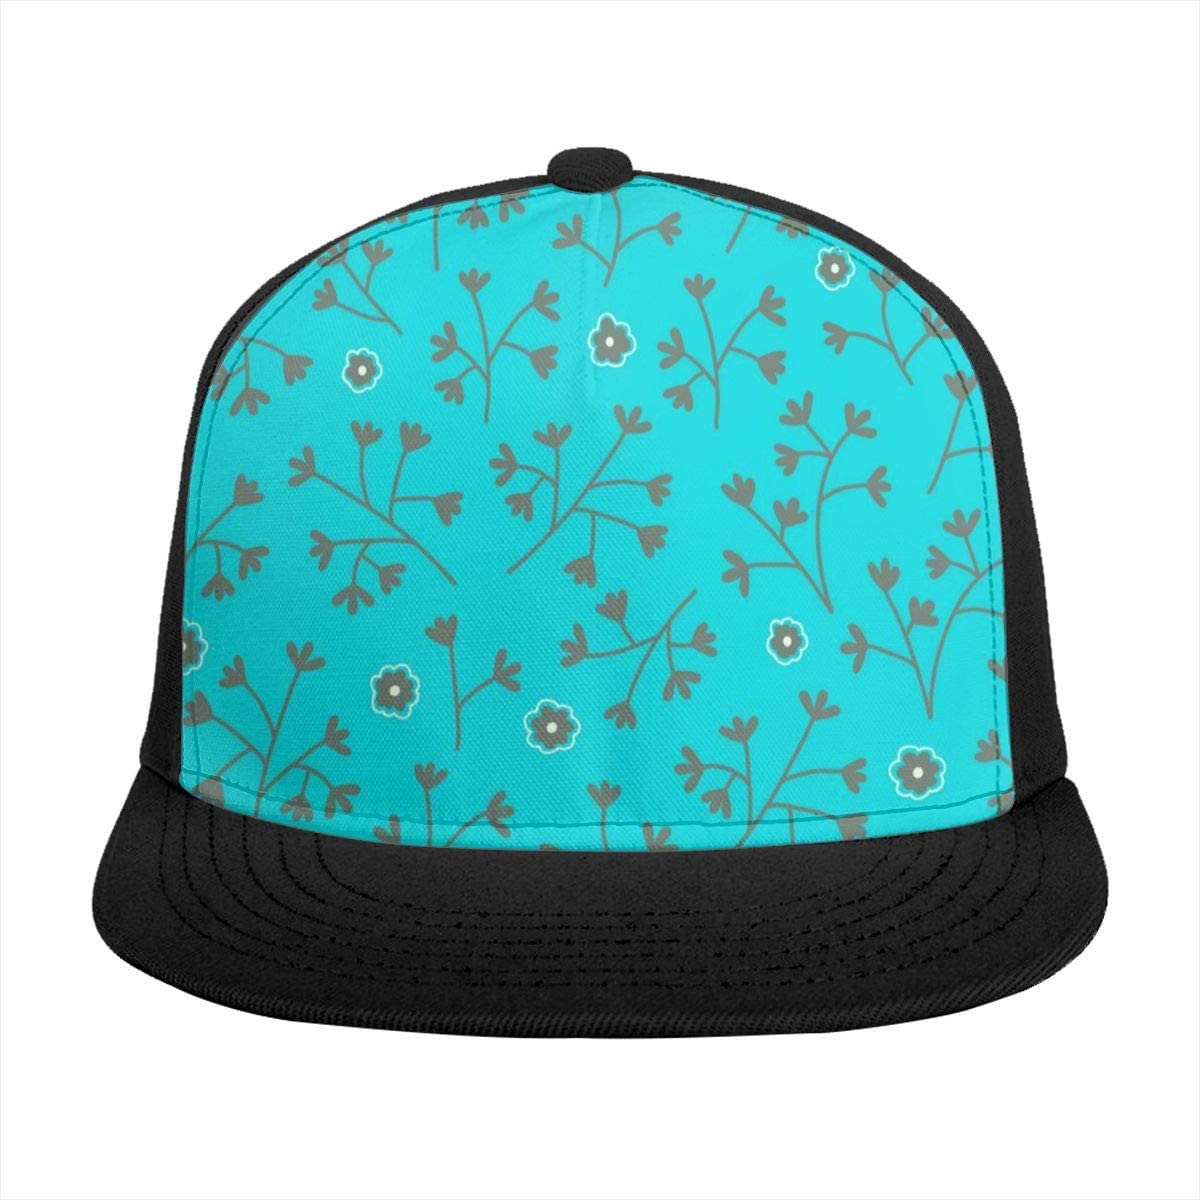 Baseball Cap Turquoise Blue Small Flowers Sun Visor Flat Brim Hats Cap for Women Men Summer